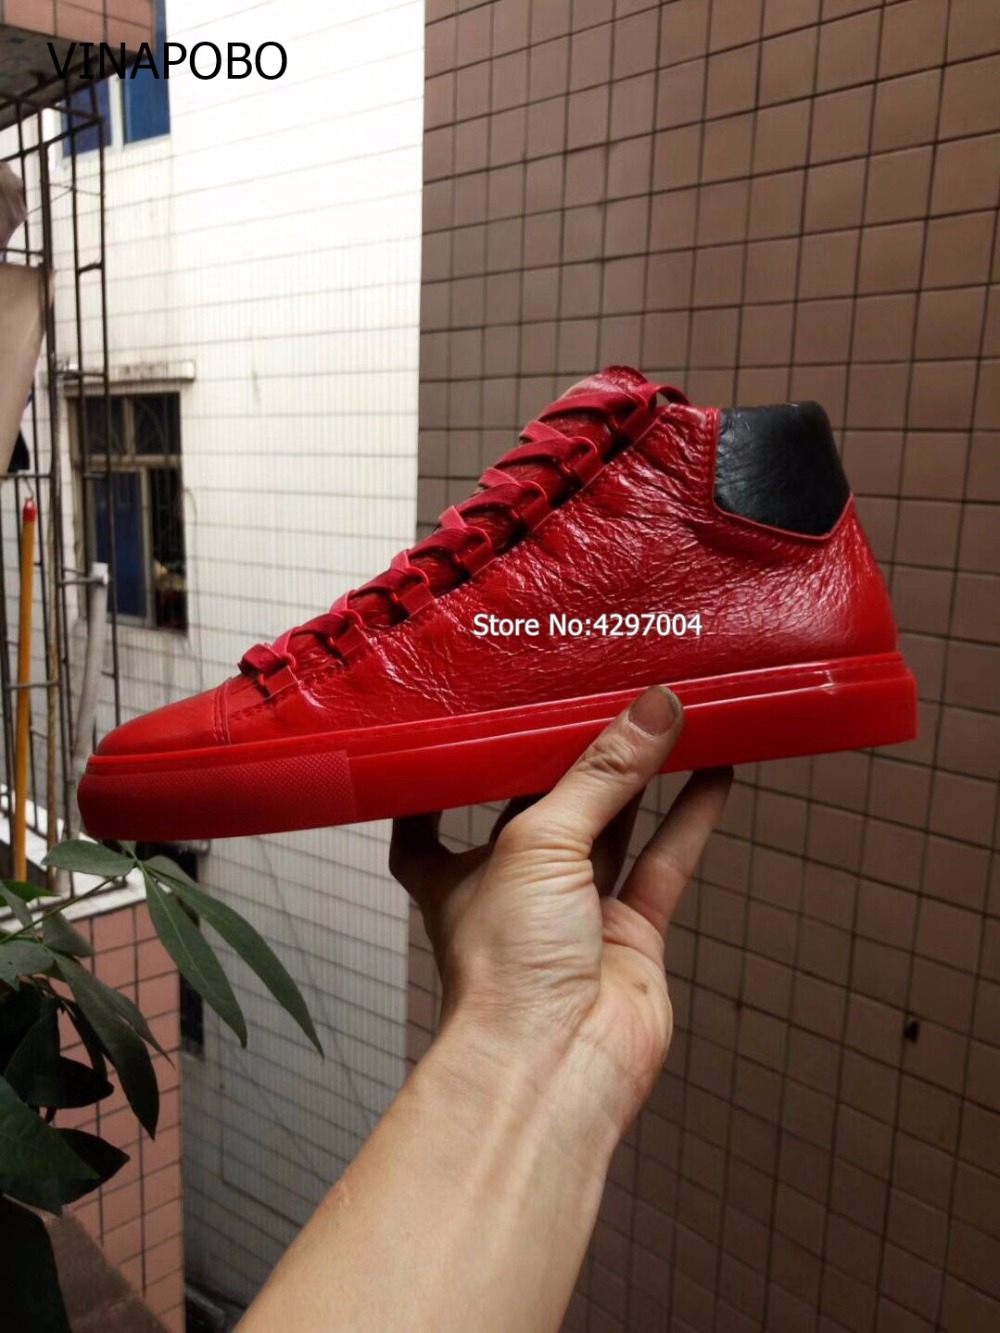 Taille Occasionnels Bottes Grande Hop High 38 The Hommes Superstar Chaussures Rouge Vinapobo En Top 46 Hip Cuir Picture Sneakers As v5adqcw